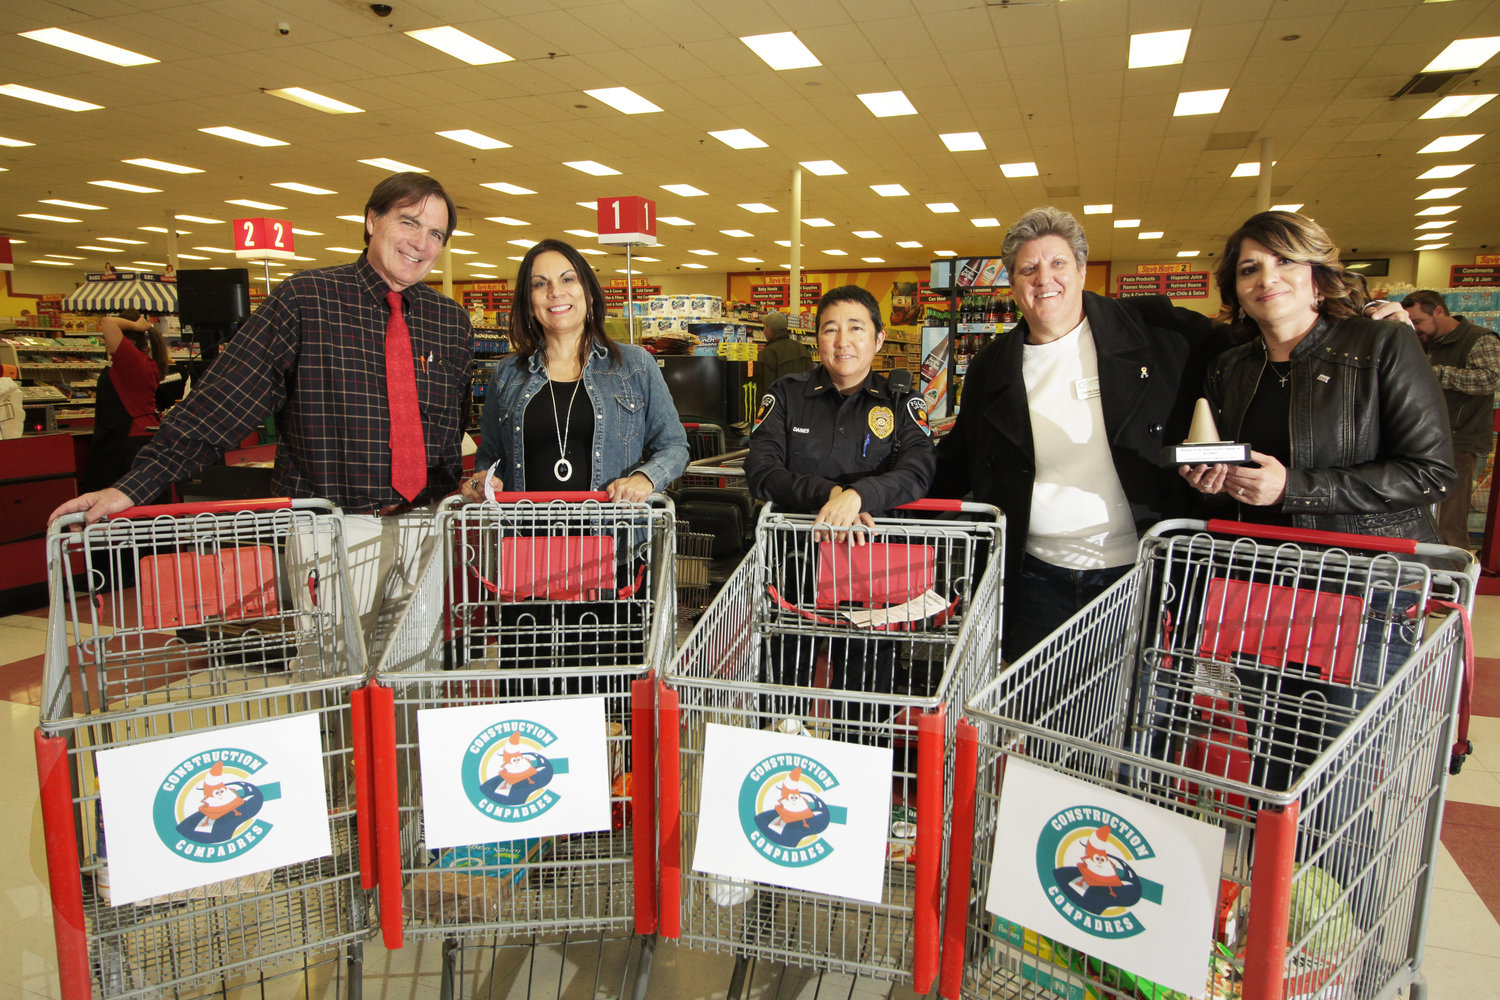 Participants in the Supermarket Sweep Feb. 21 at Save Mart were, from left, City Councilors Greg Smith and Kasandra Gandara, Las Cruces Police Department Lieutenant Kiri Daines, Green Chamber CEO/President Carrie Hamblen, and the Supermarket Sweep winner, JoAnn Garay, director of the Small Business Development Center.  (Bulletin photo by Steve MacIntyre)